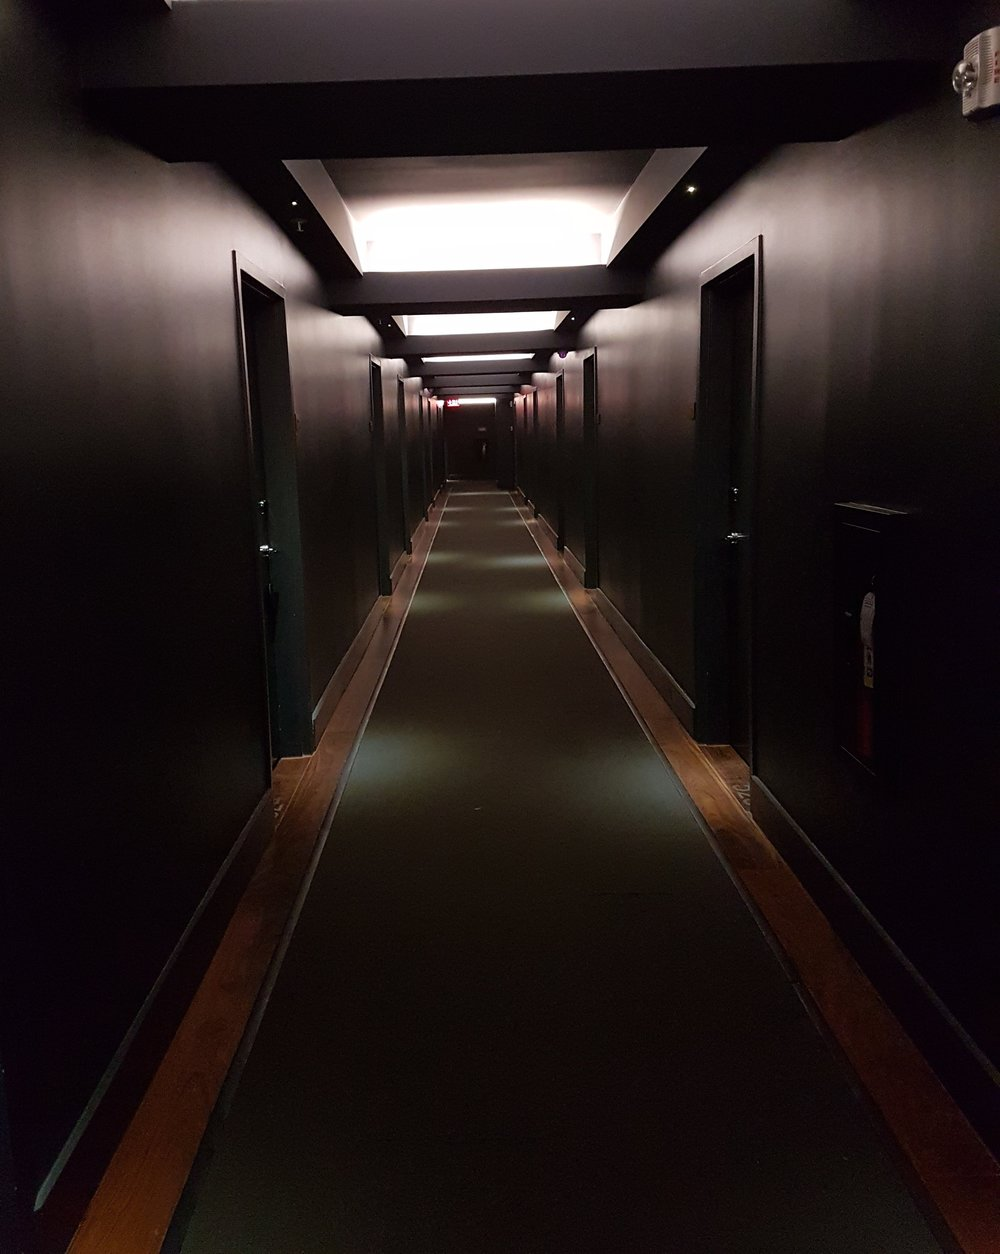 I think my only negative comment would be the hallways. They are painted charcoal. It really makes the hotel feel dark and gloomy.